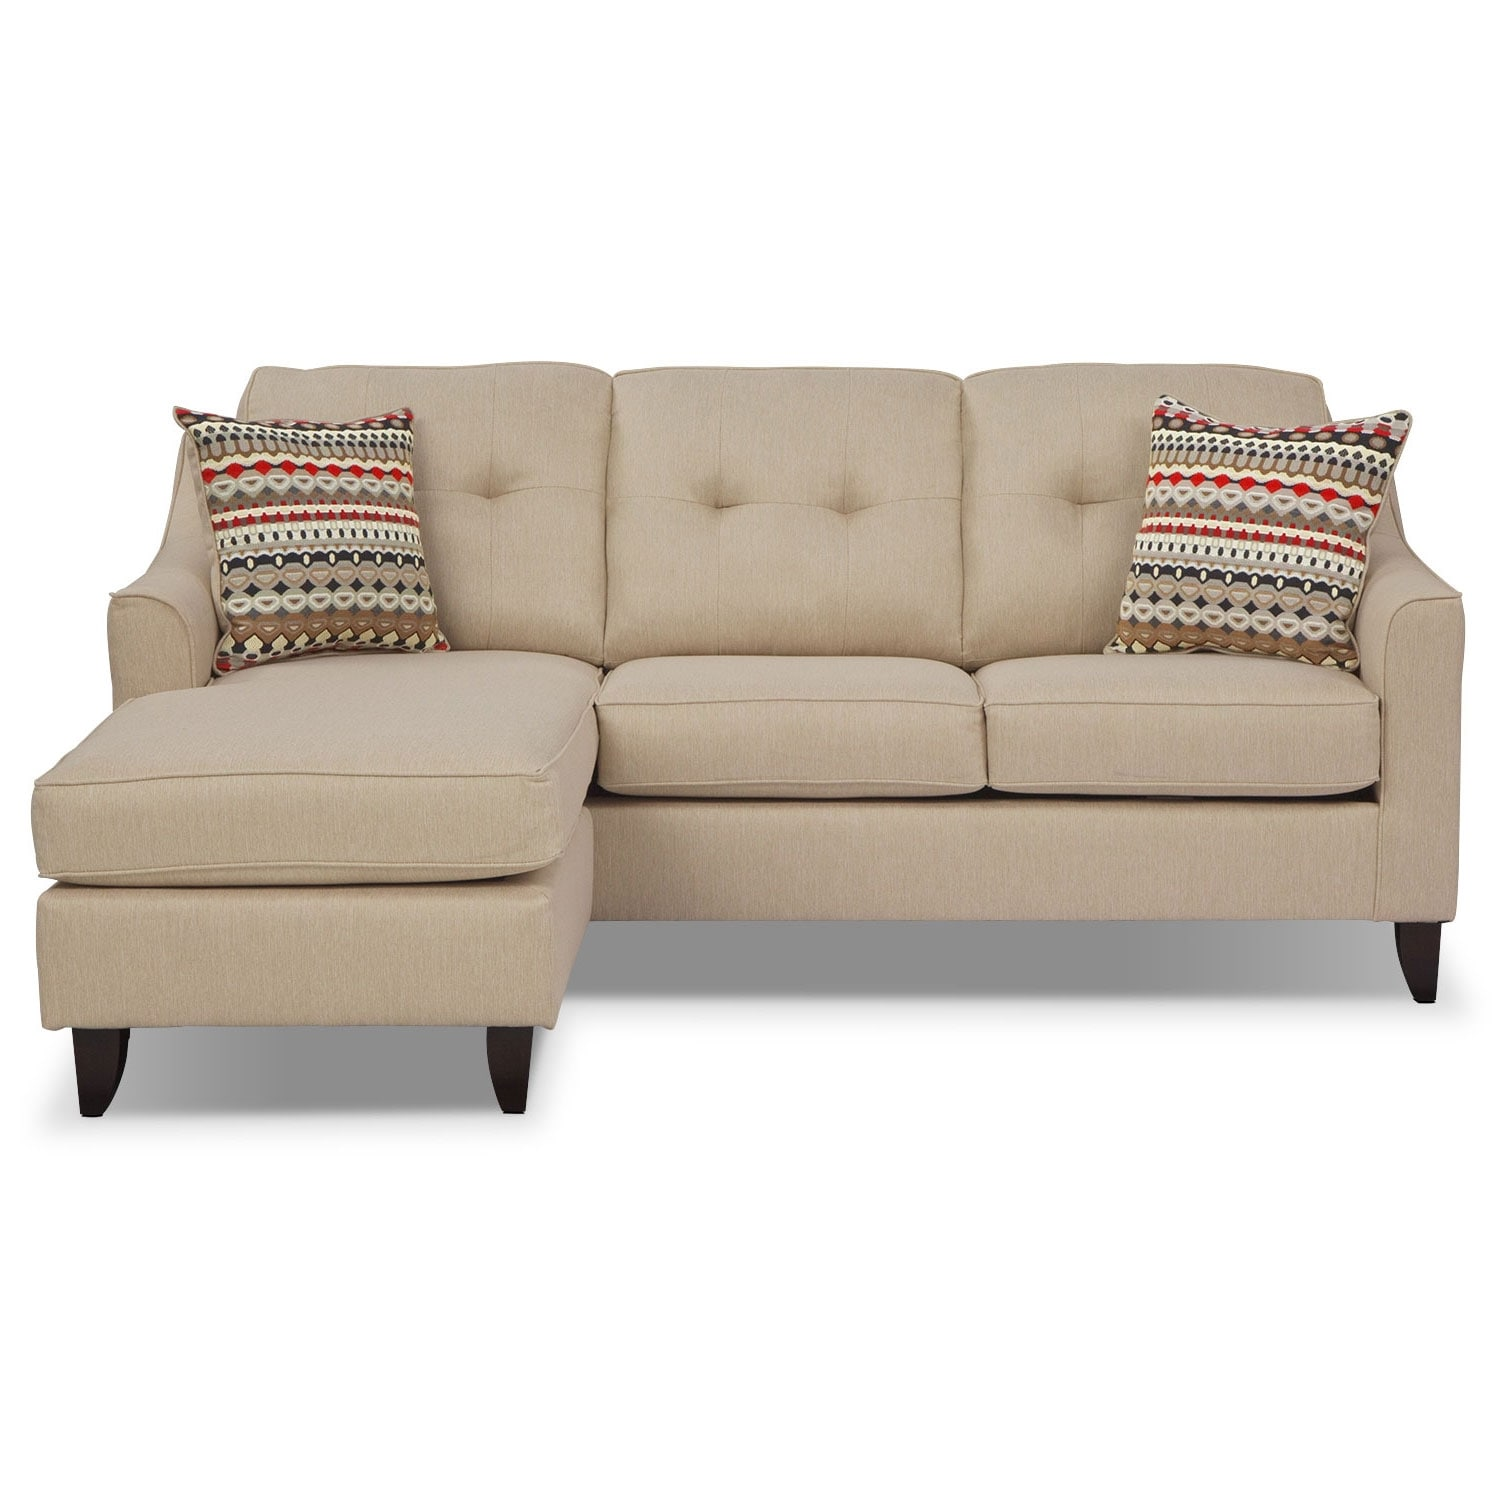 Cream chaise sofa cream leather chaise lounge reviravoltta for Berkline callisburgh sofa chaise